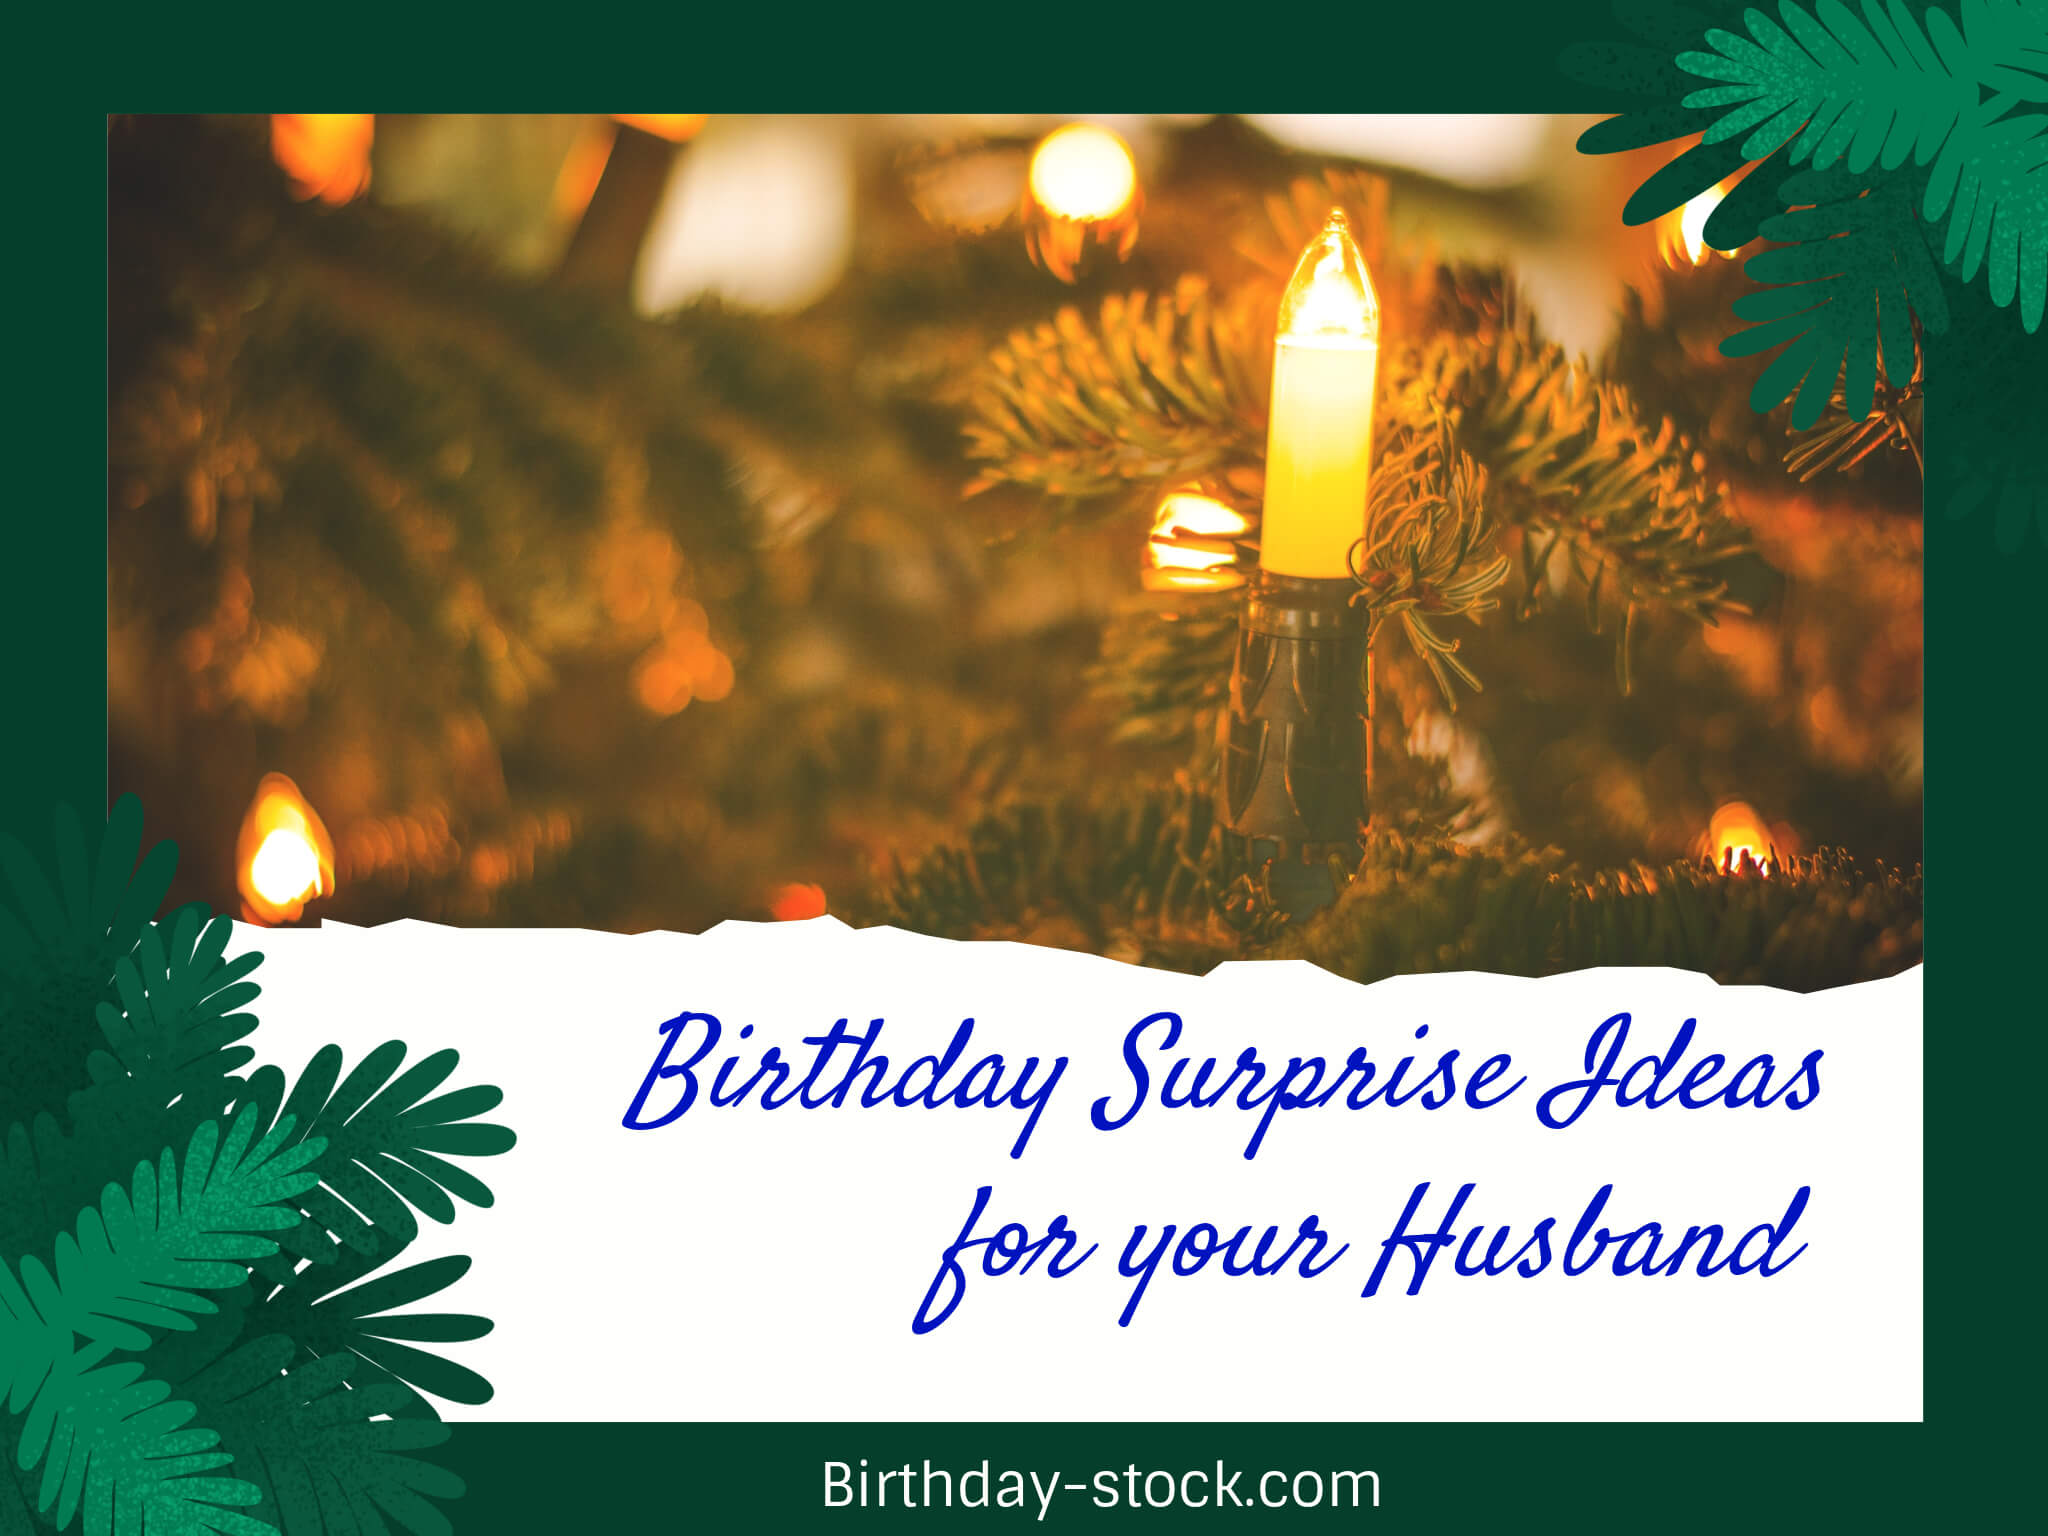 BIrthday Surprise Ideas for Husband